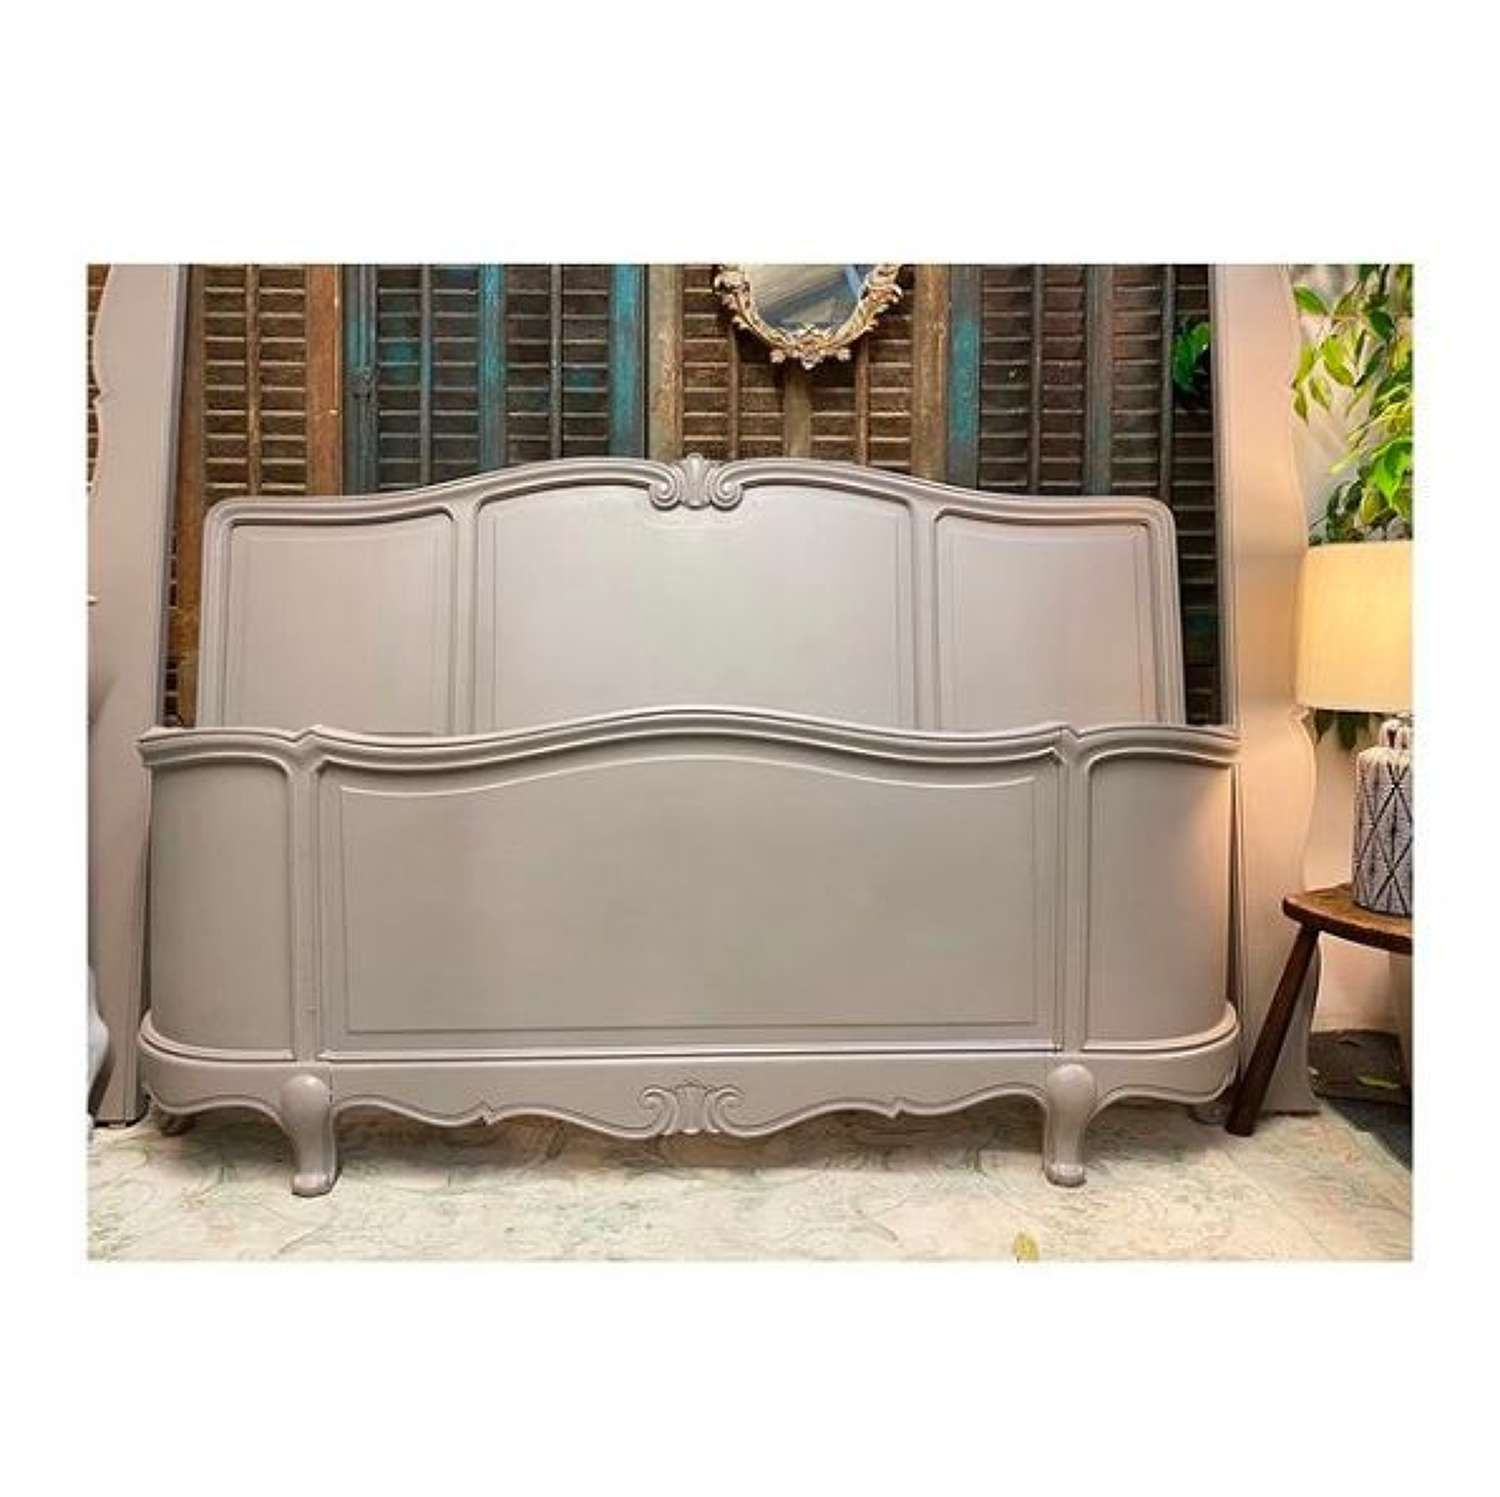 Amazing king size French bed